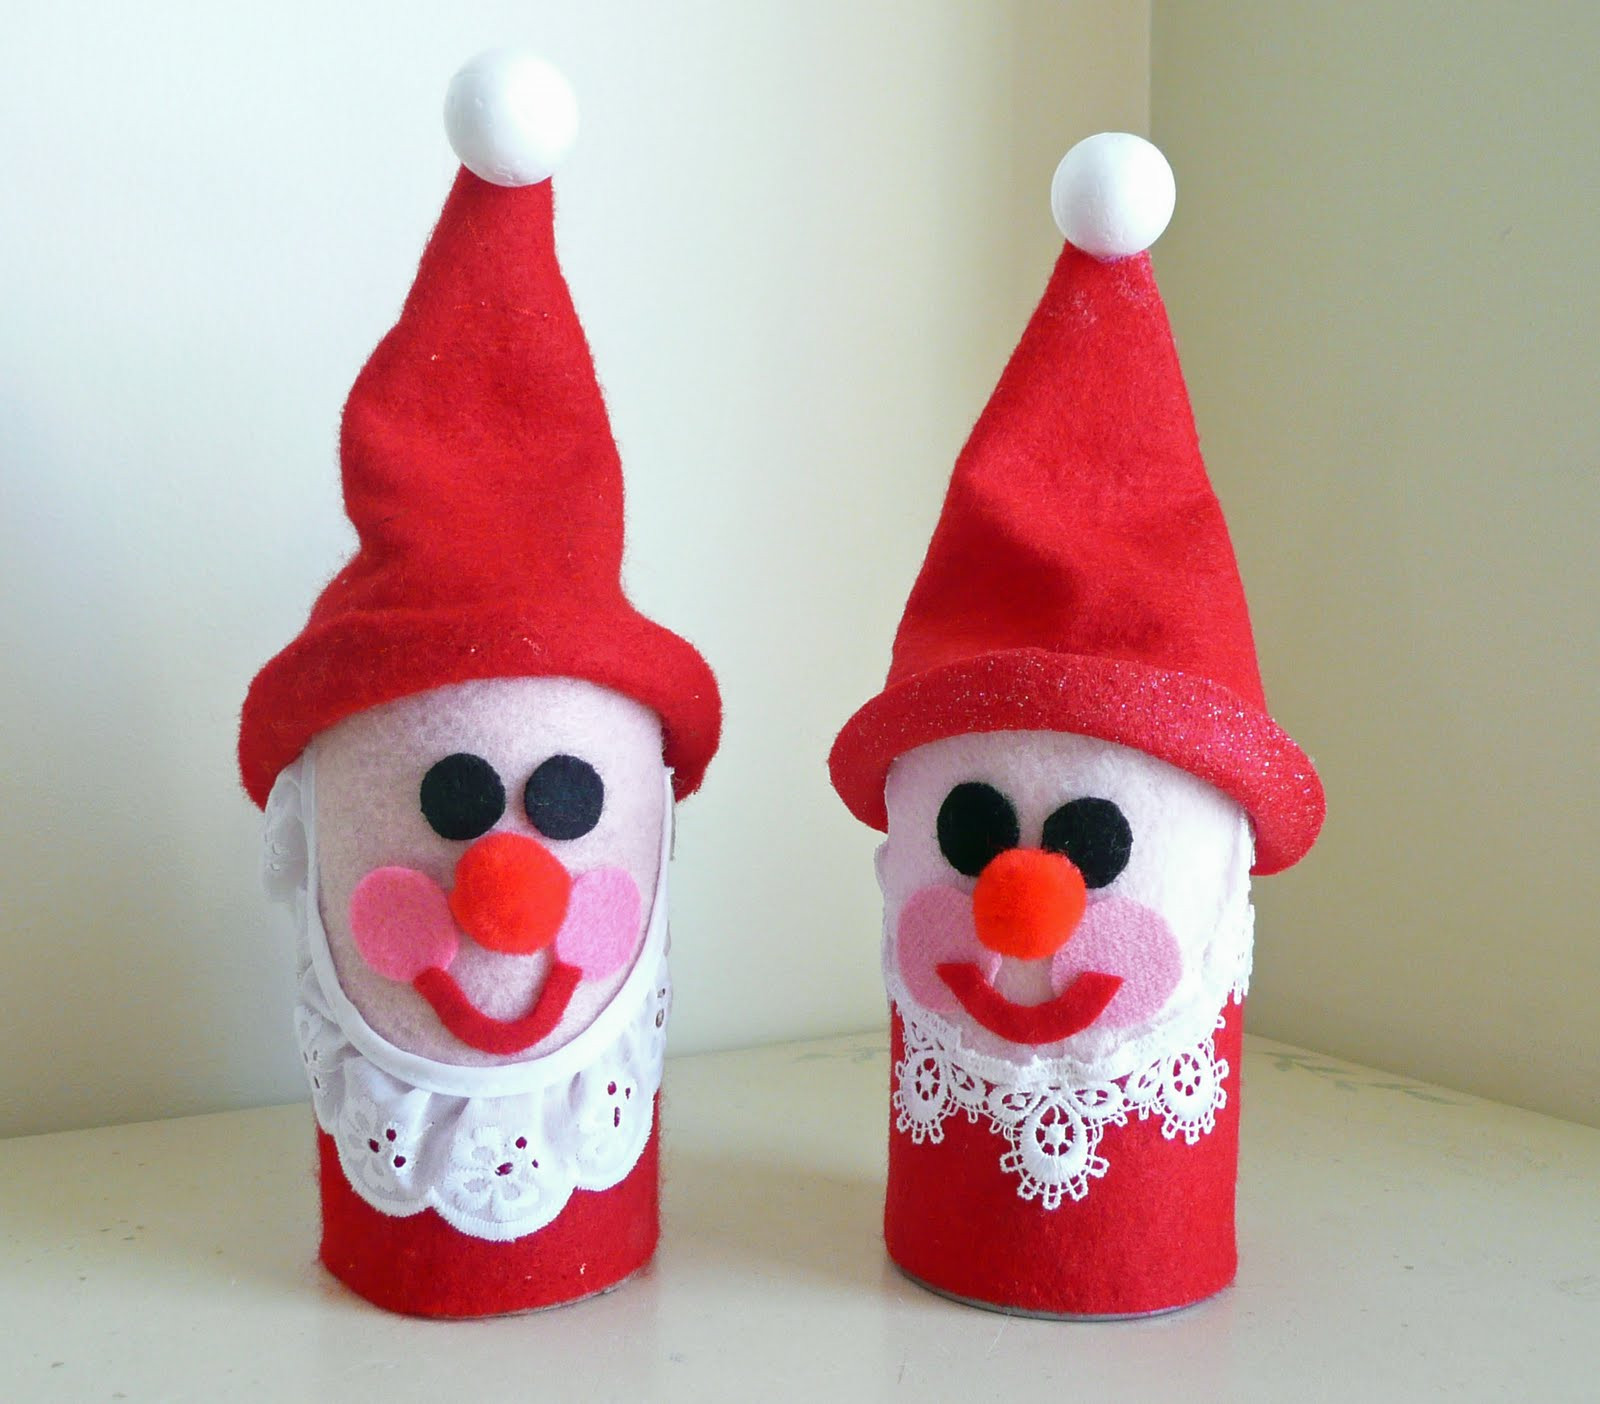 Best ideas about Kids Christmas Craft Ideas . Save or Pin Preschool Crafts for Kids Toilet Roll Santa Christmas Craft Now.